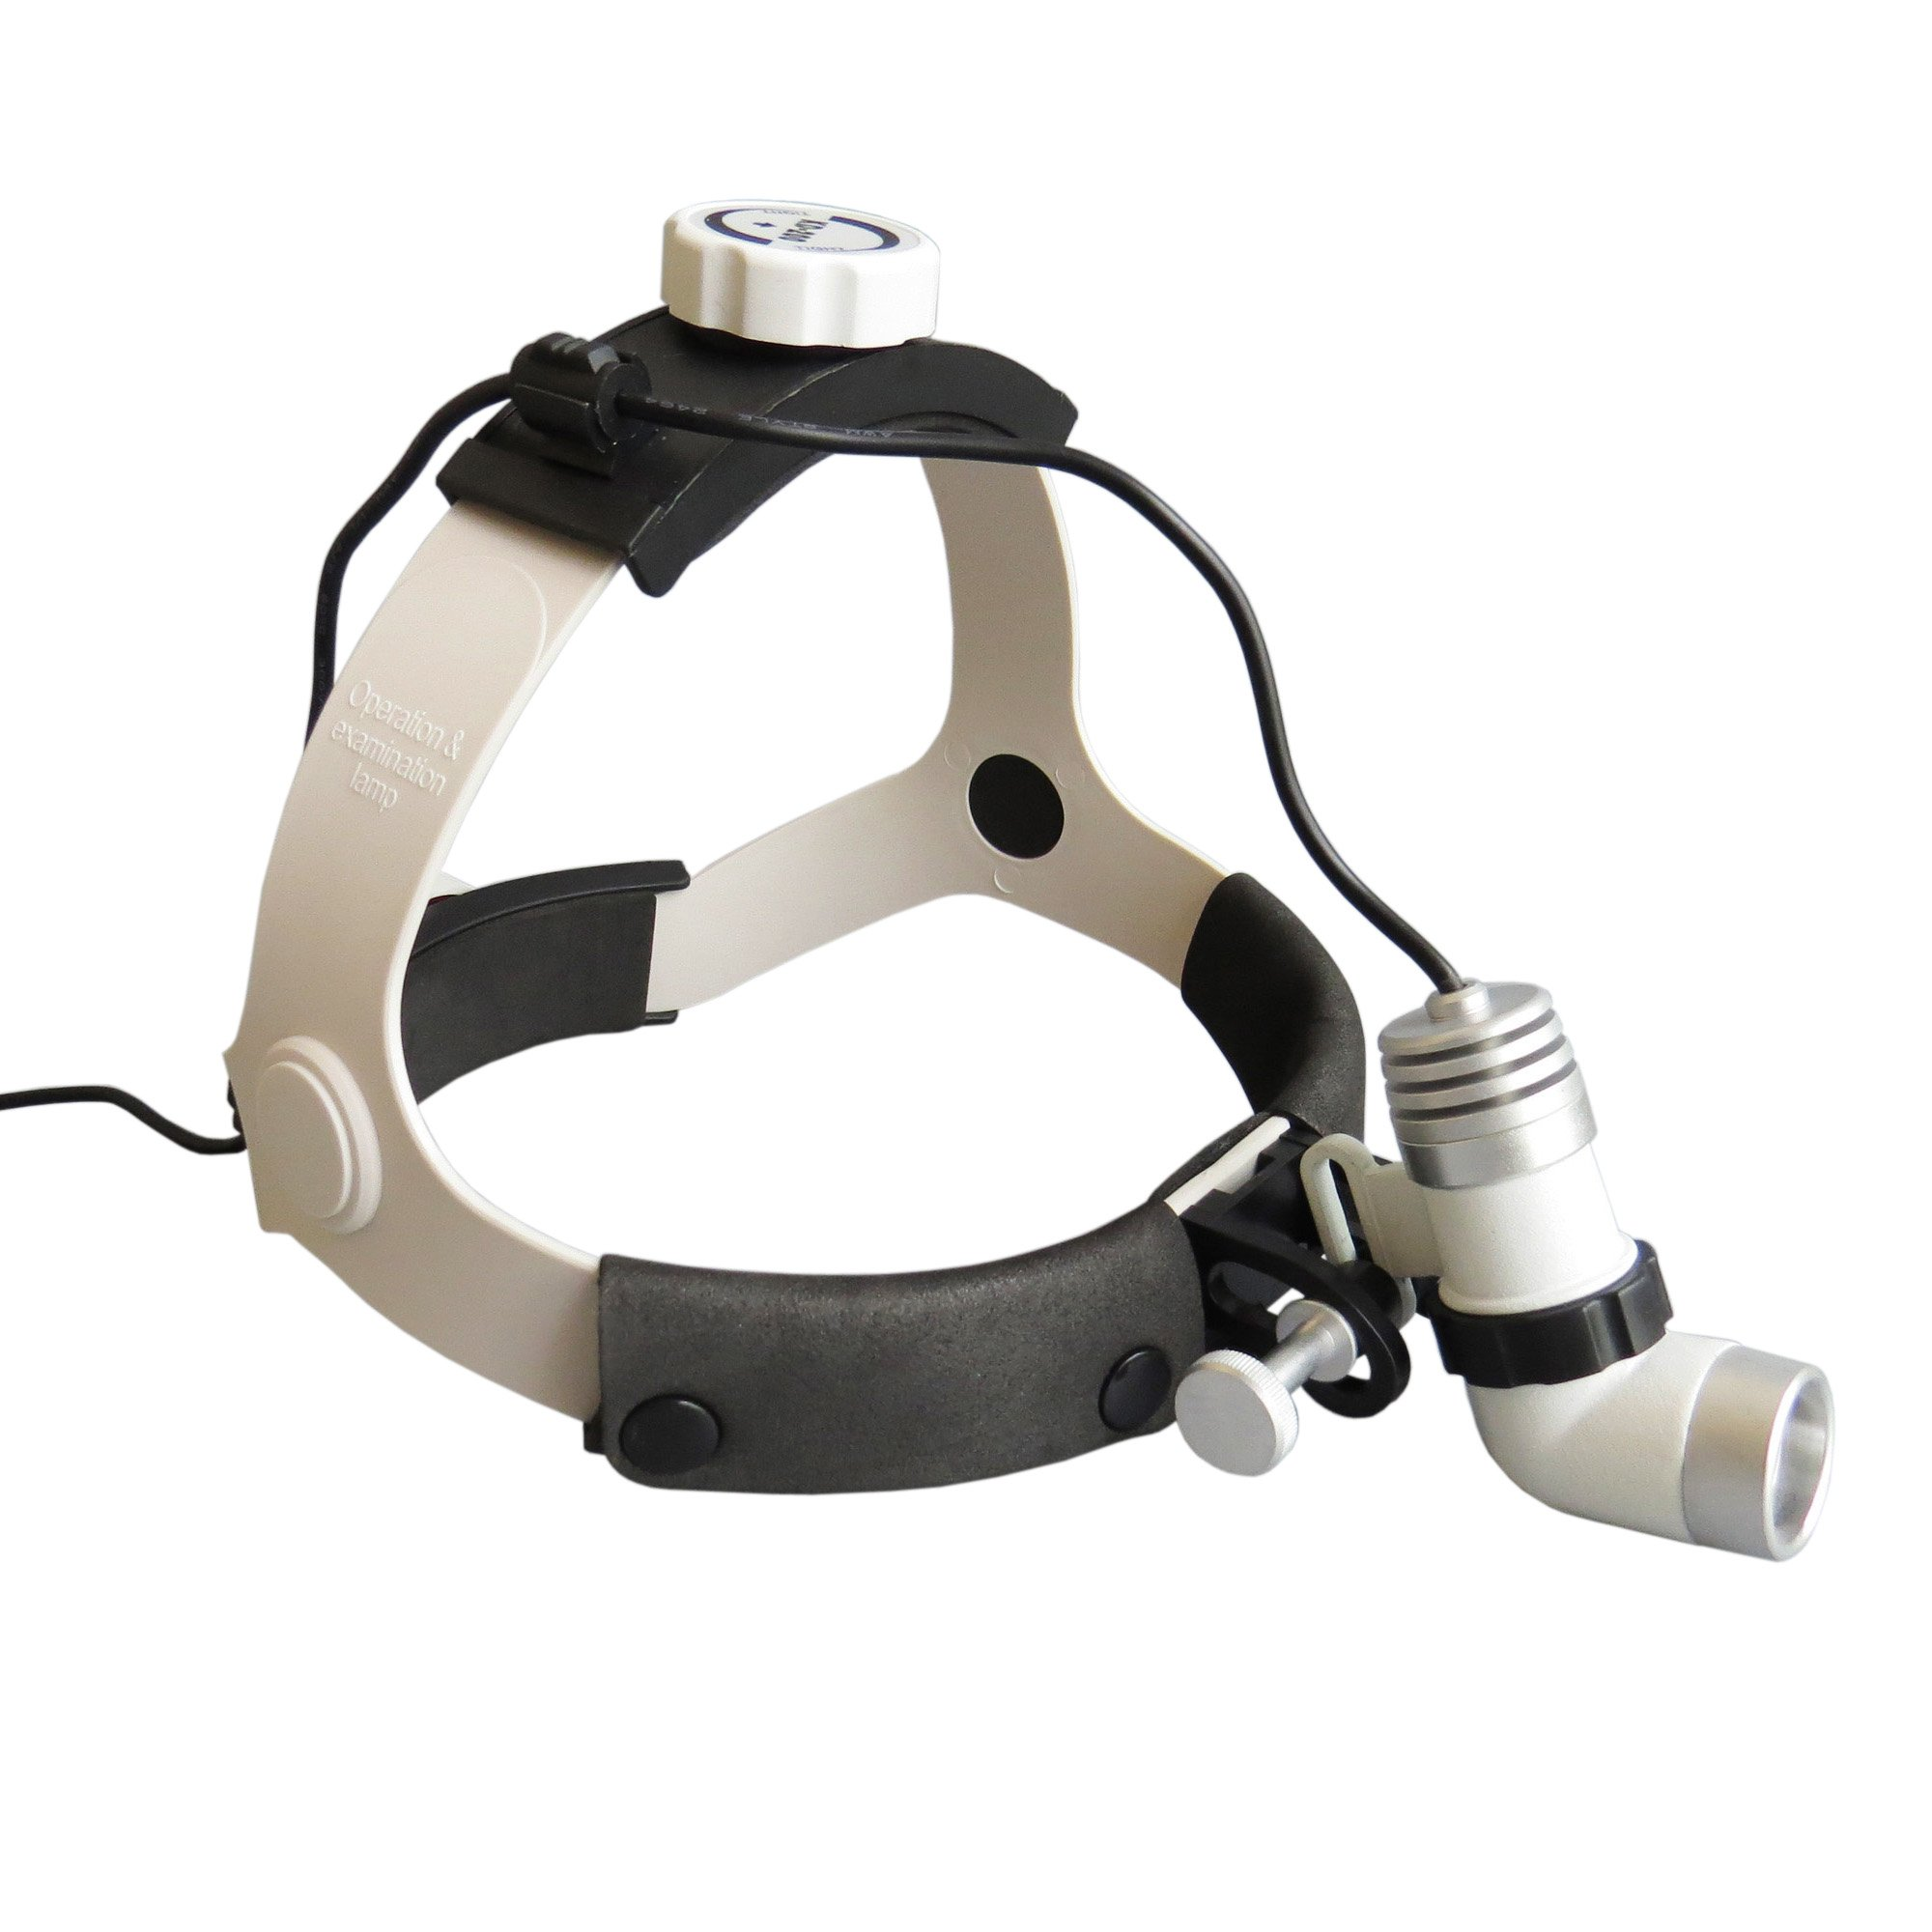 1 Pc NEW in BOX 3w LED Surgical Medical Head Light Lamp Headlight Ac/dc Kd-202a-3